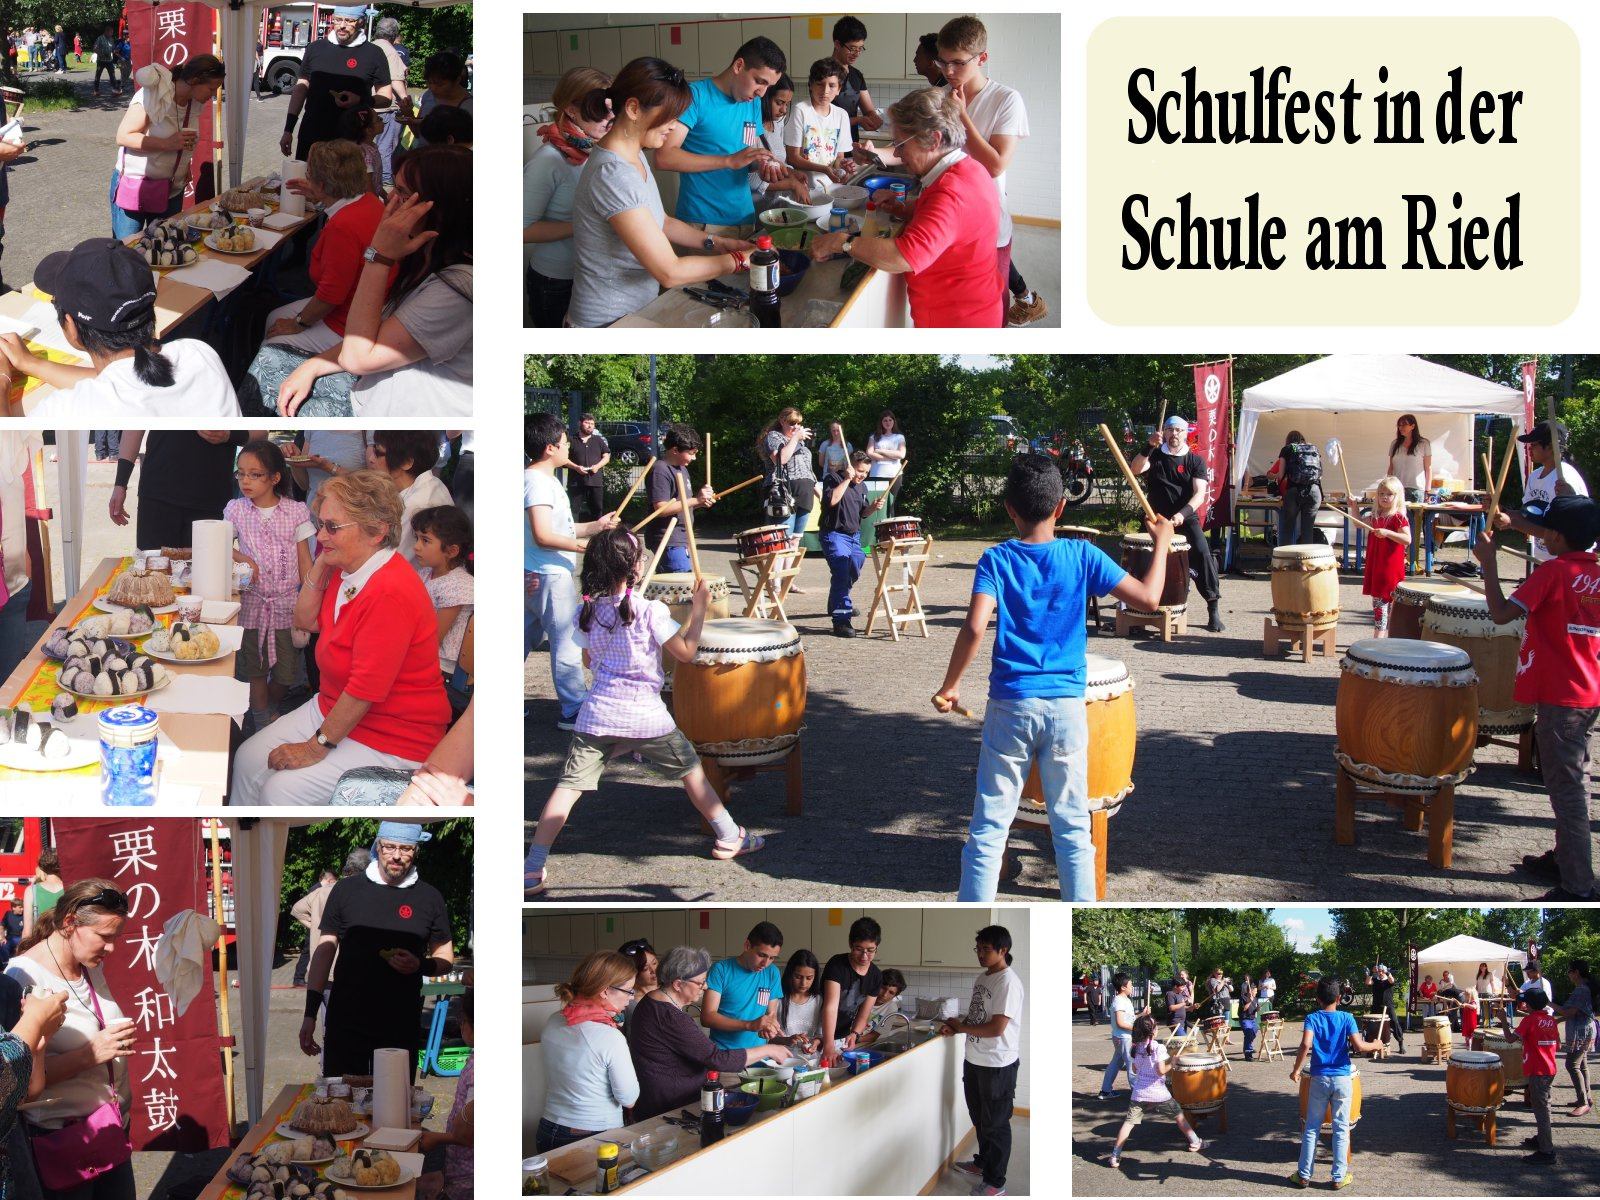 Schulfest-collage